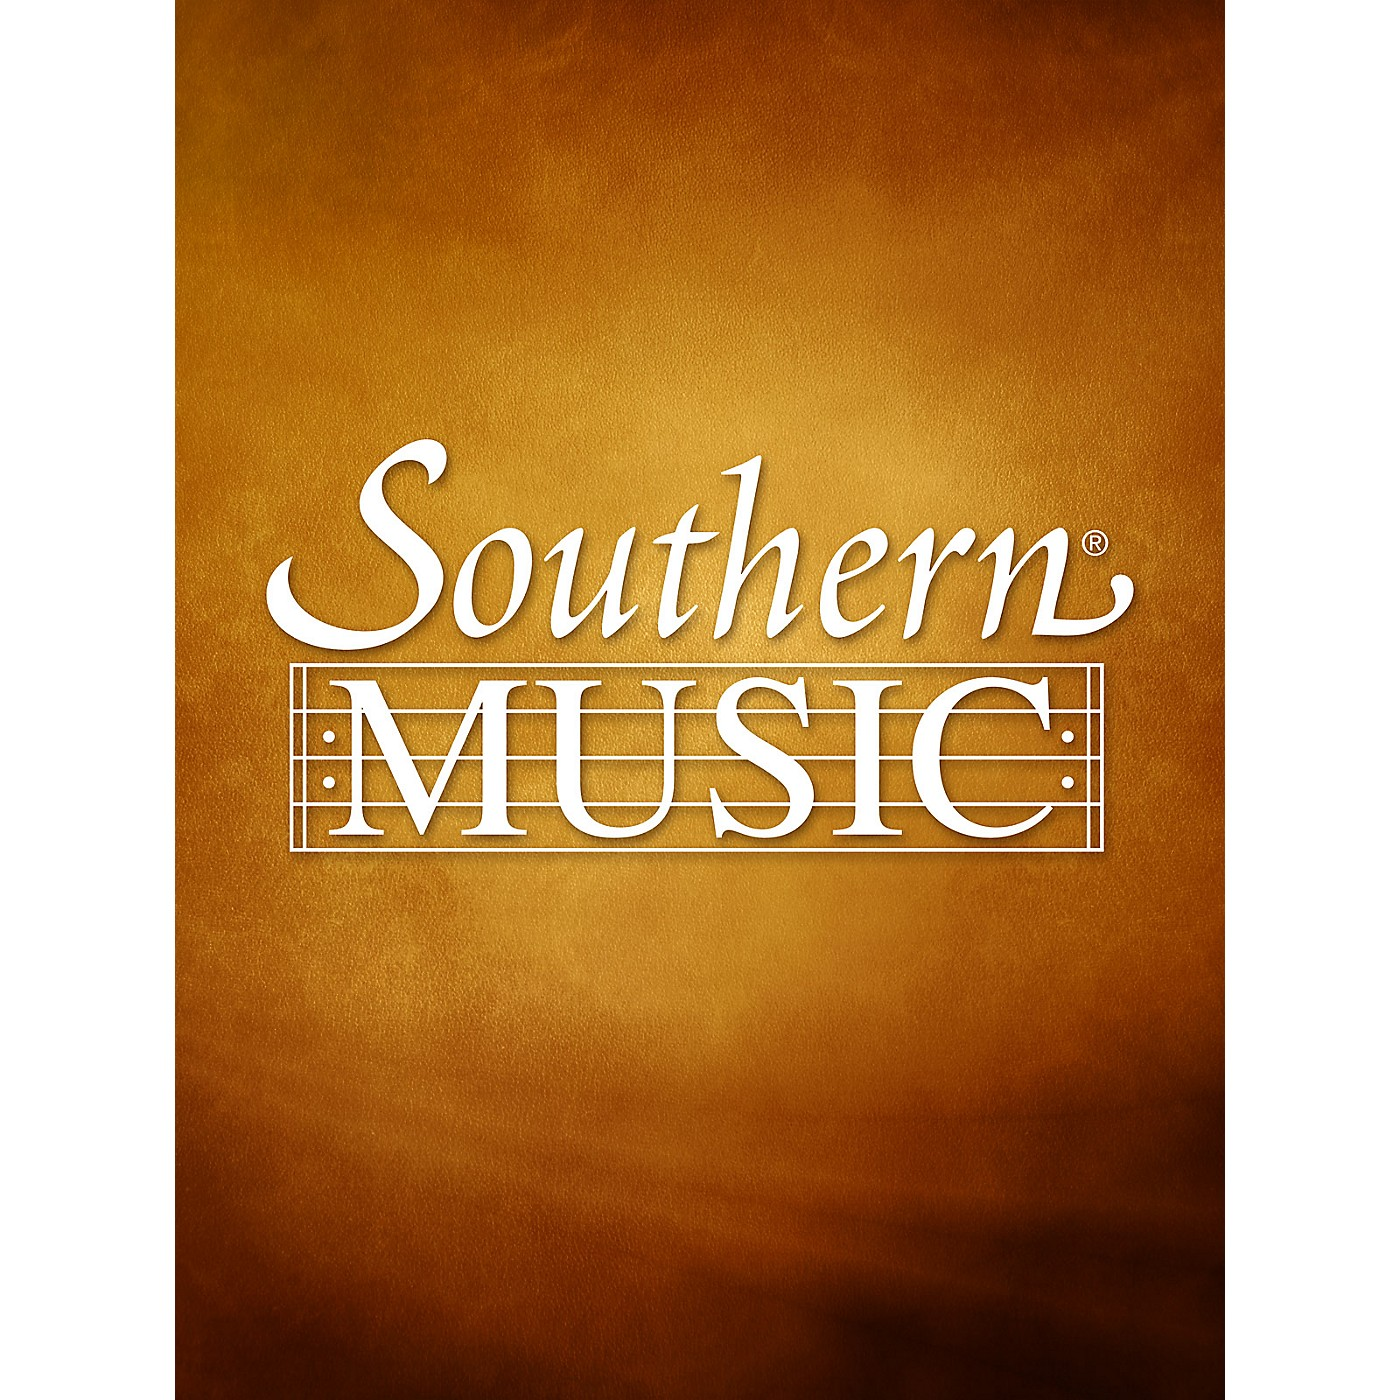 Southern Bach Chorale and March (Band/Concert Band Music) Concert Band Level 2 Arranged by Jim Mahaffey thumbnail